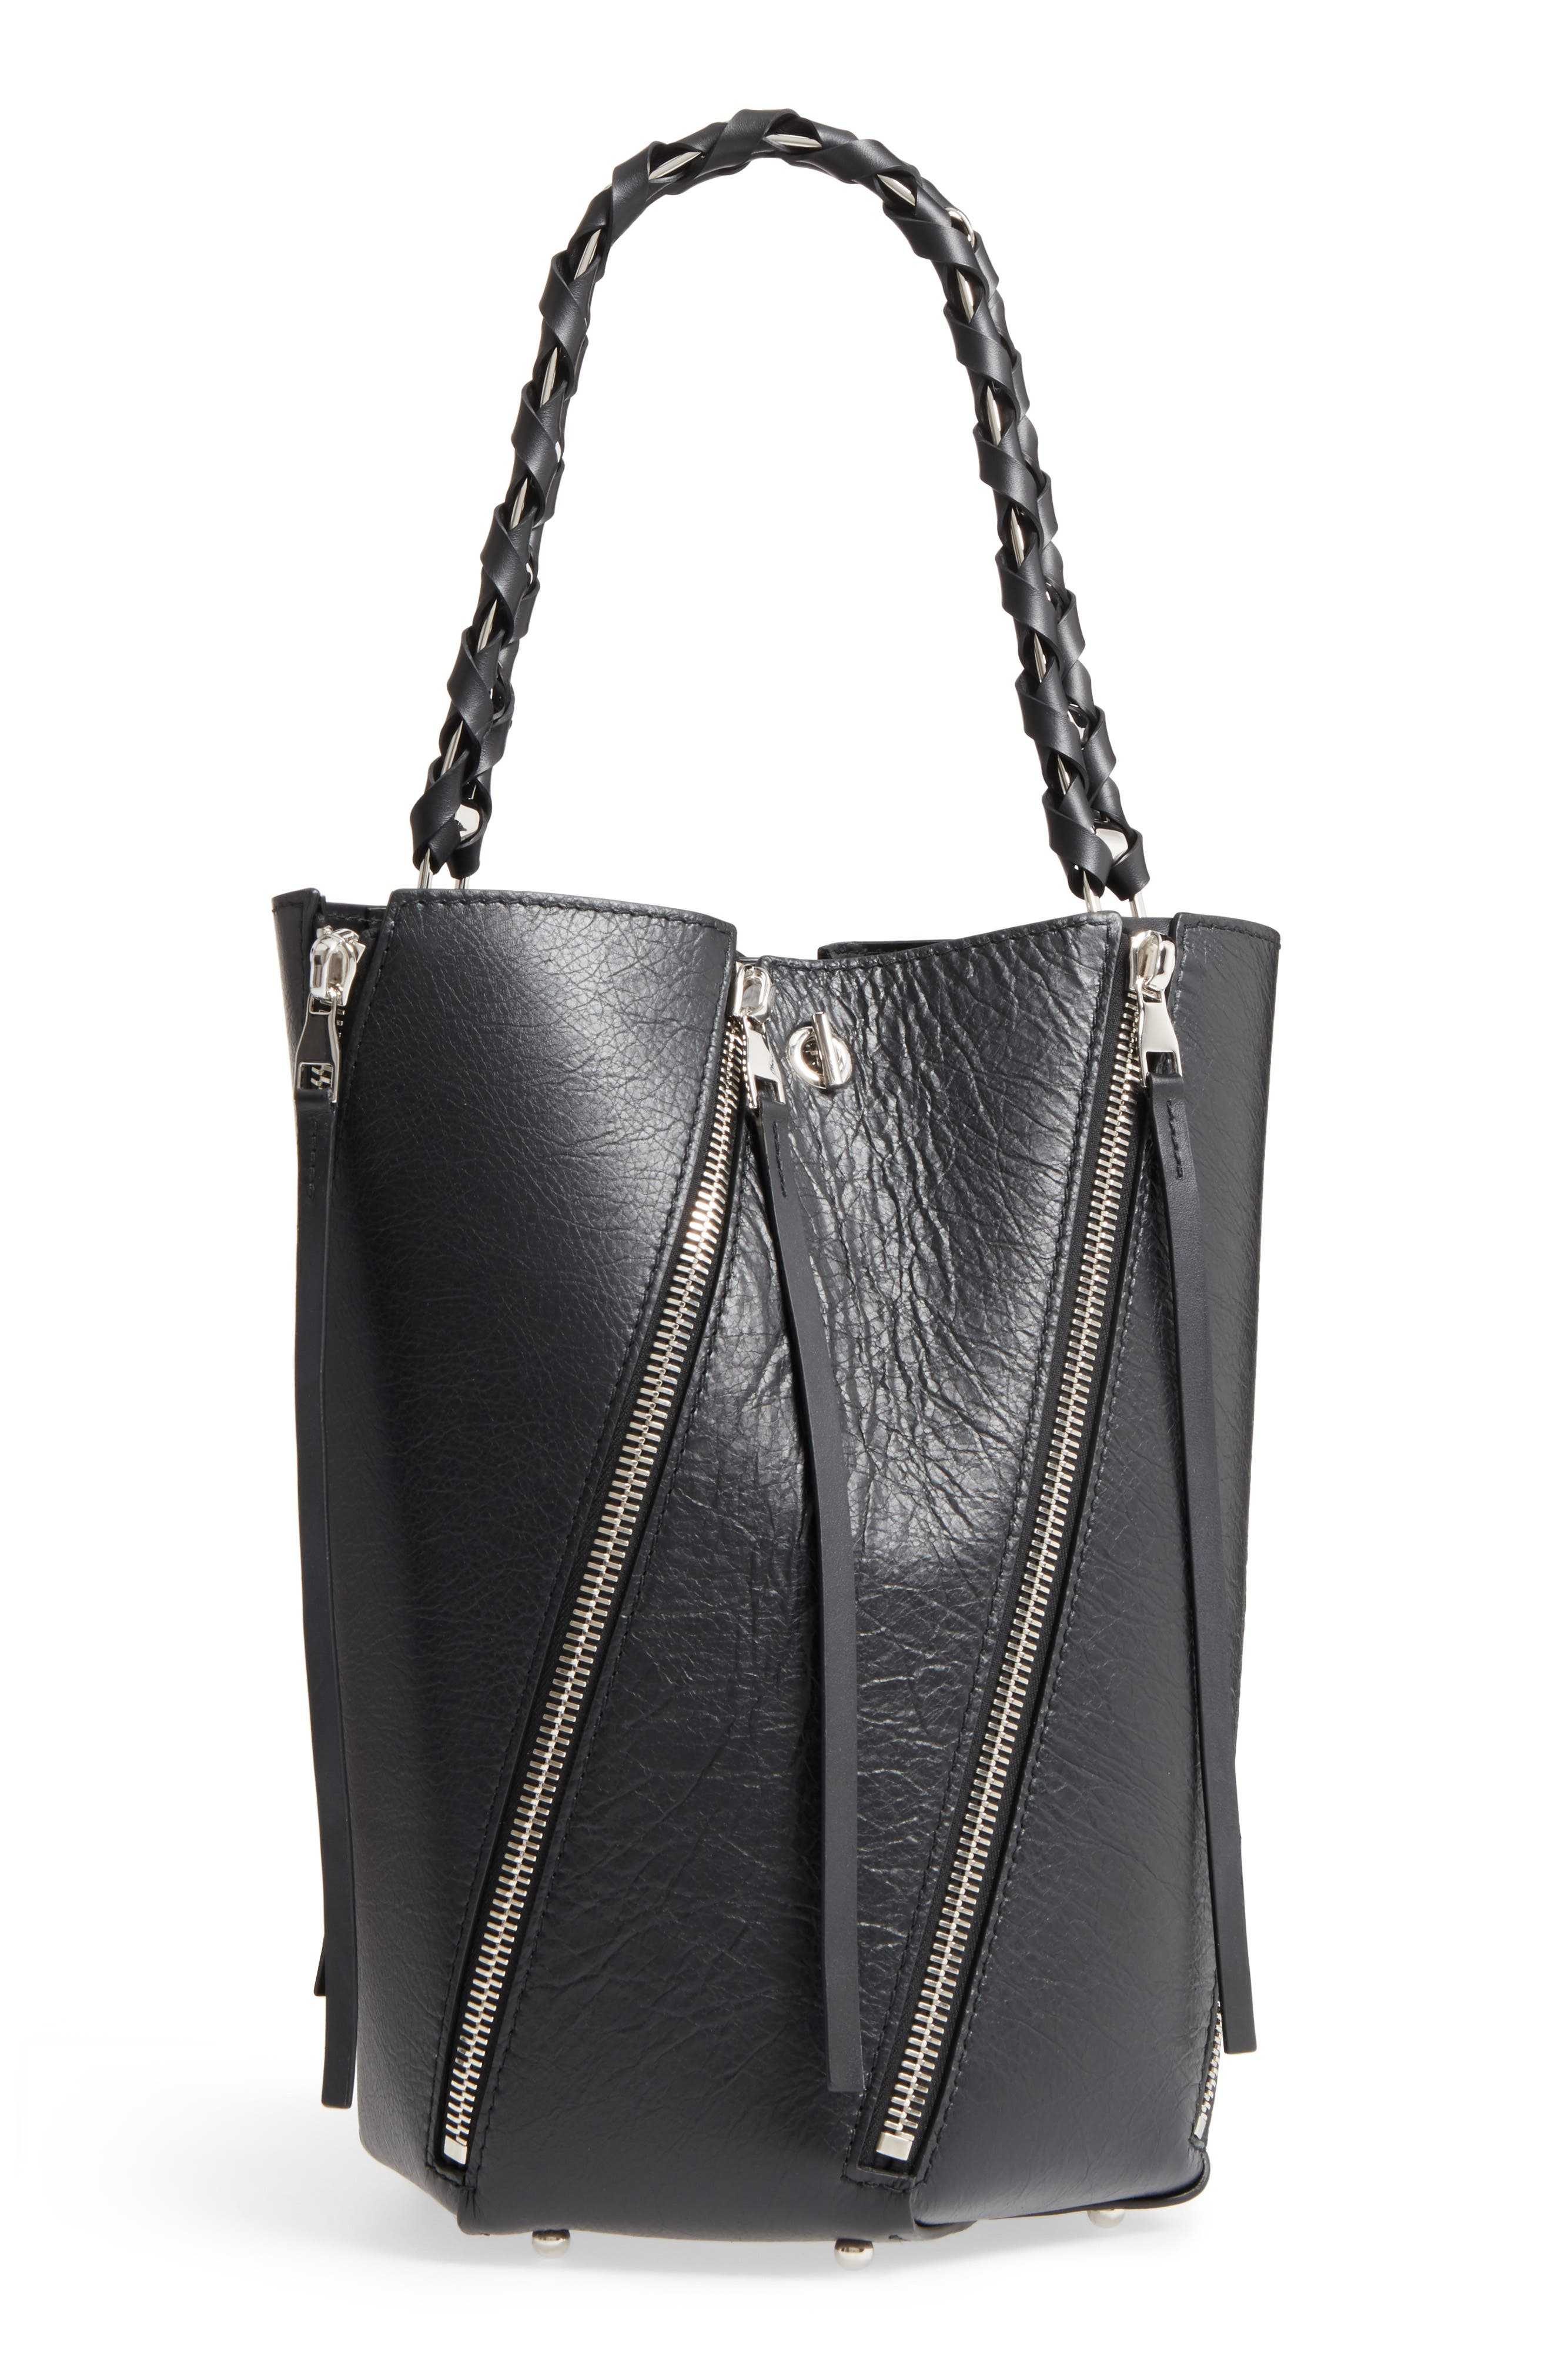 Medium Hex Zip Leather Bucket Bag,                             Main thumbnail 1, color,                             001